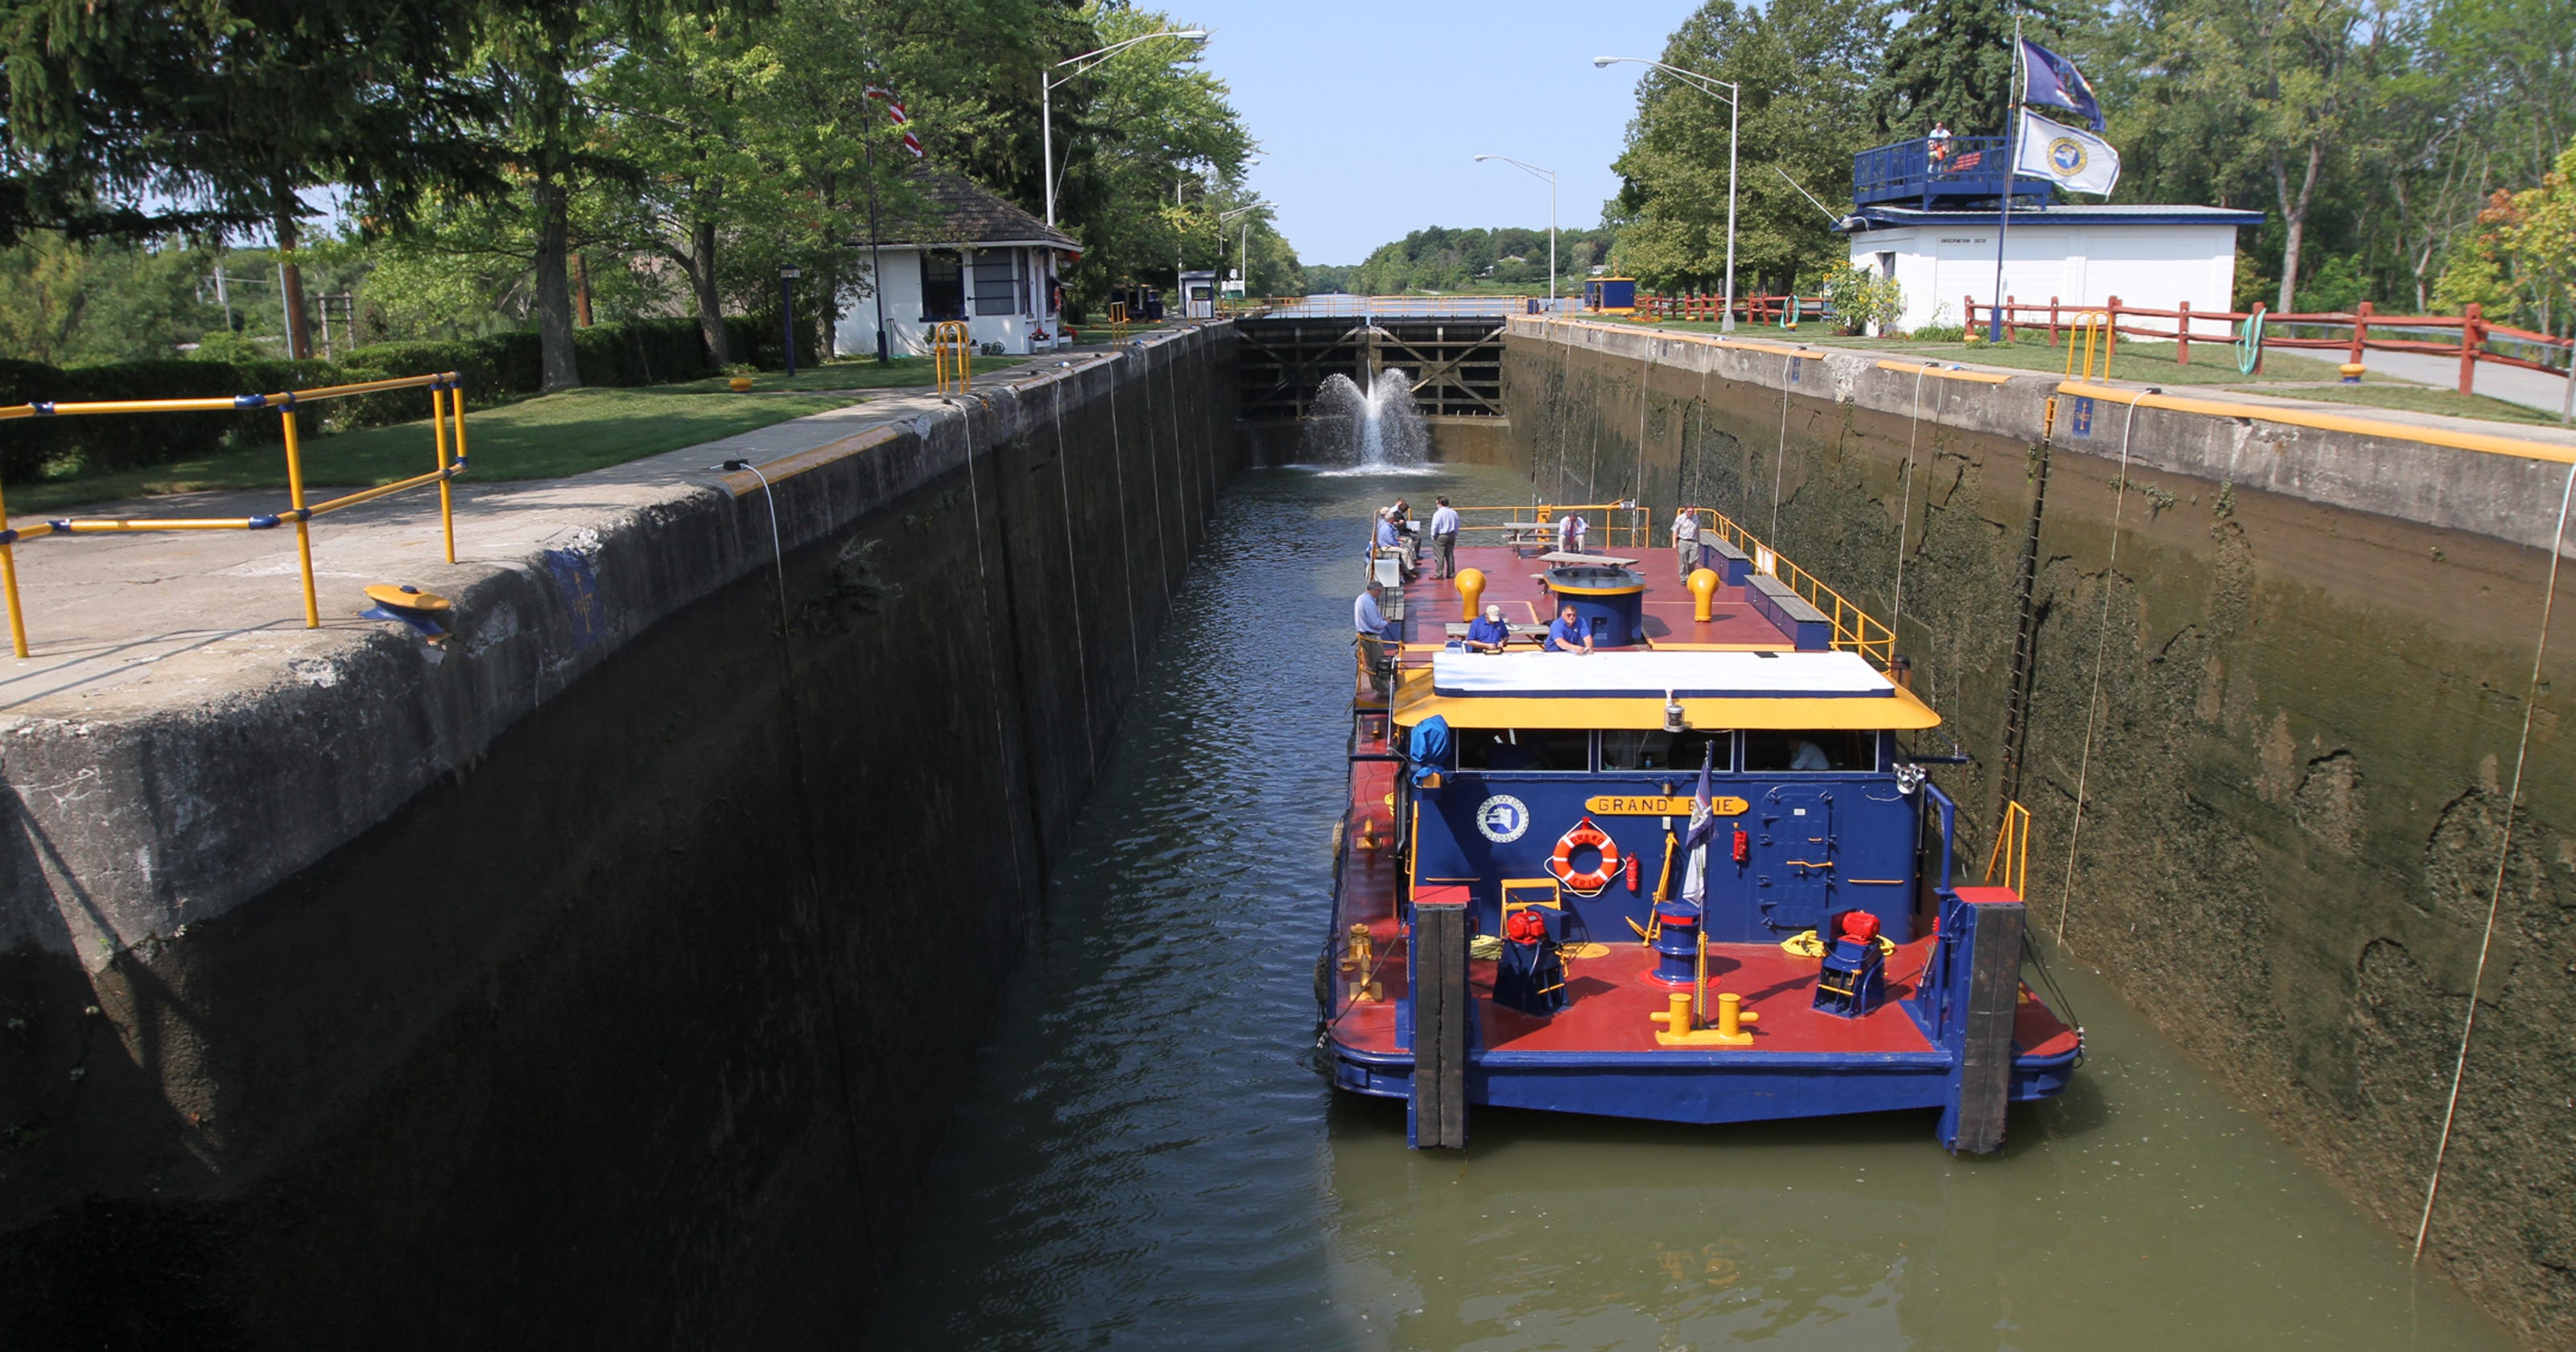 Trash by canal barge? It's been discussed